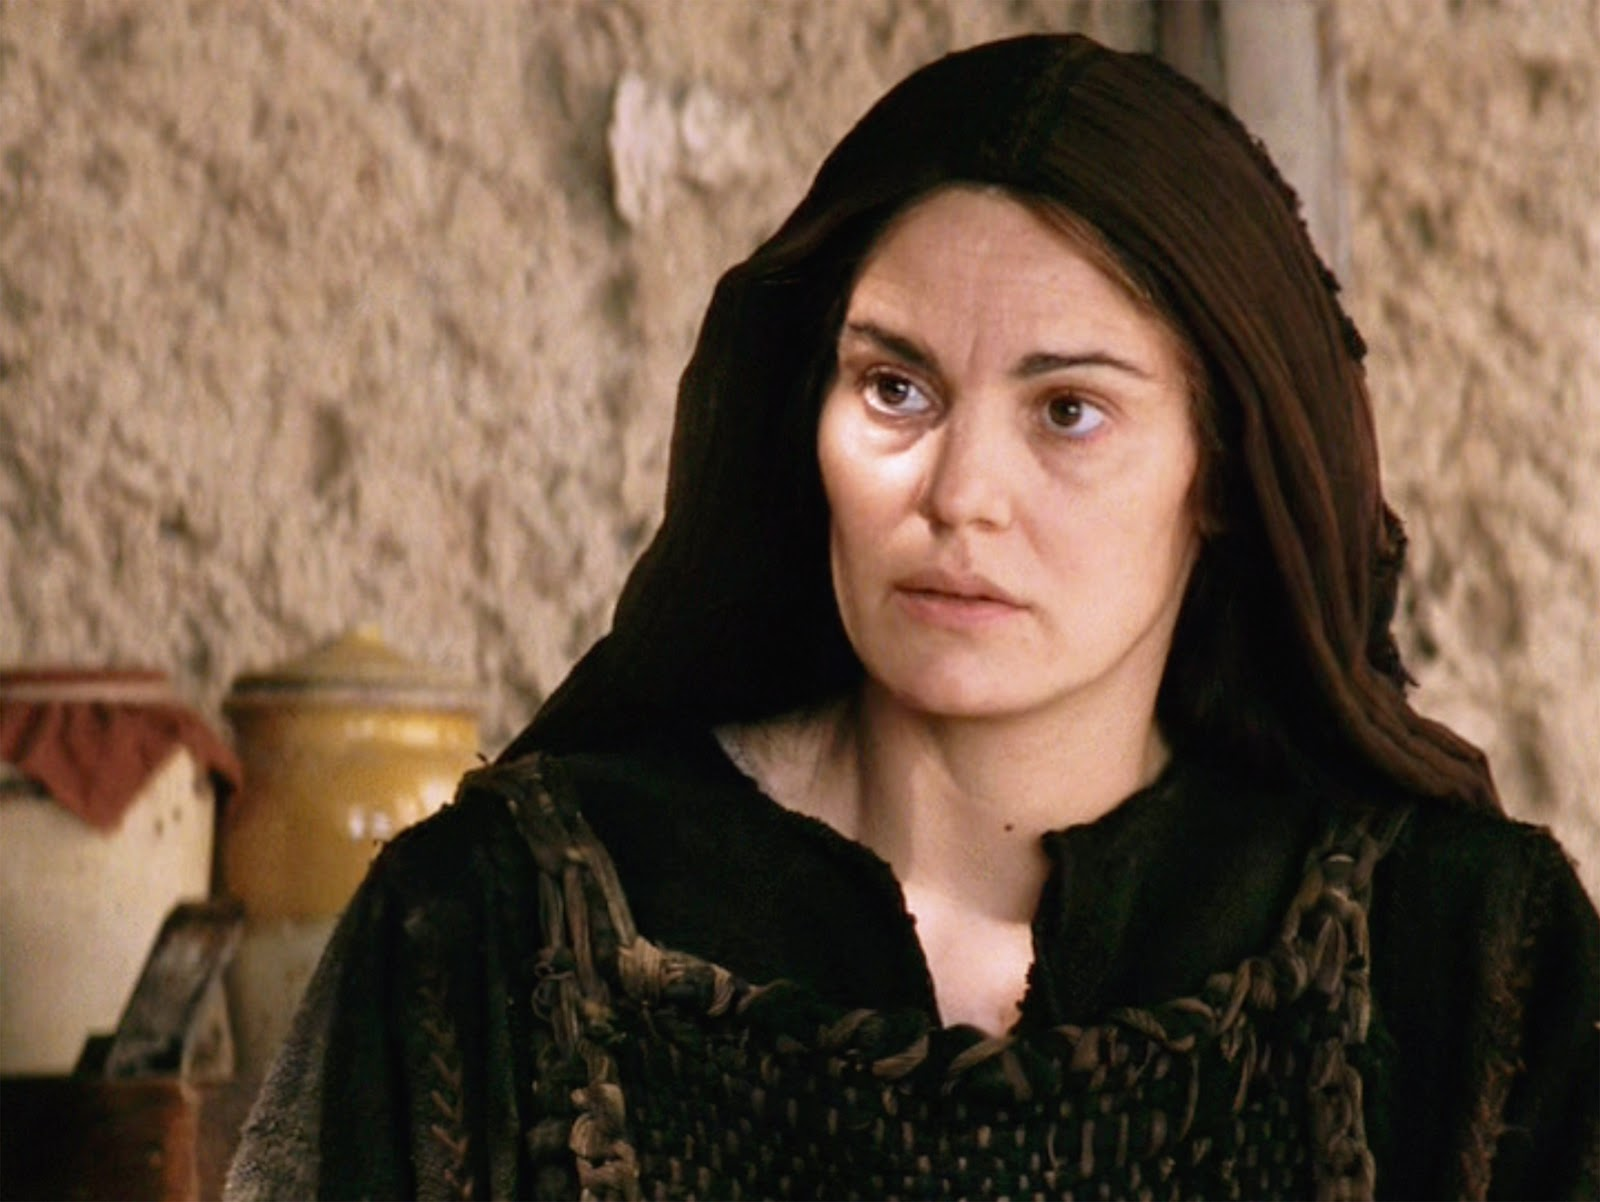 """Maia Morgenstern as Mary in """"The Passion of the Christ"""""""